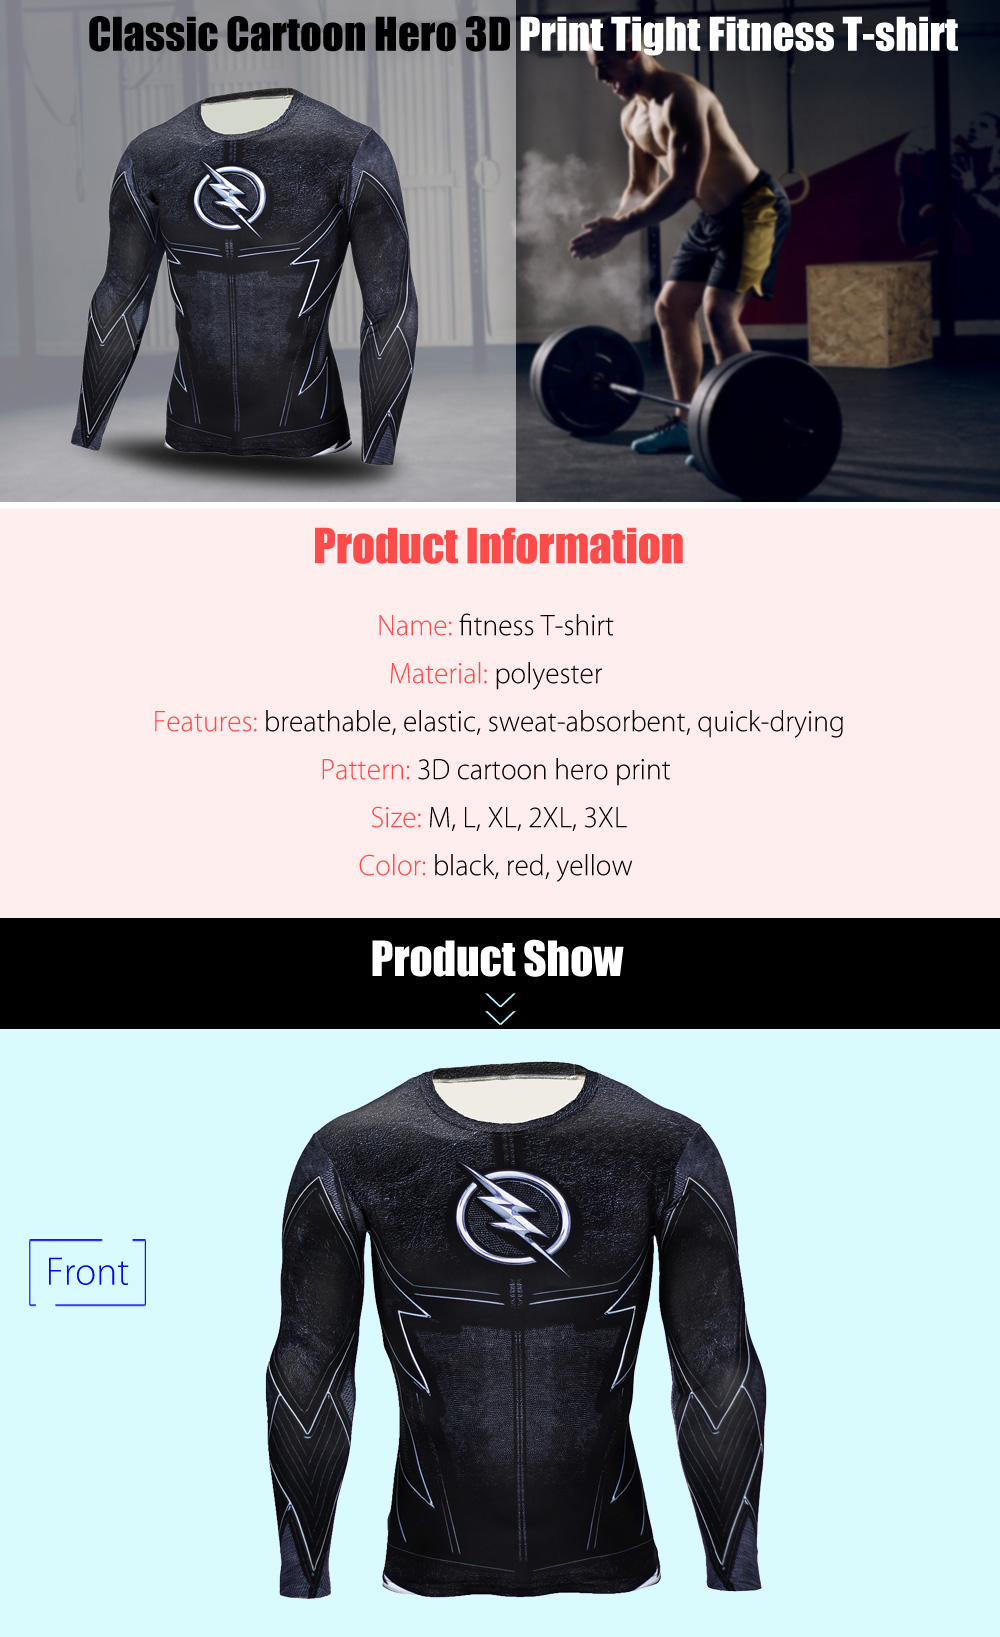 Classic Cartoon Hero 3D Print Close Fit Long Sleeves T-shirt Tight Fitness Tops